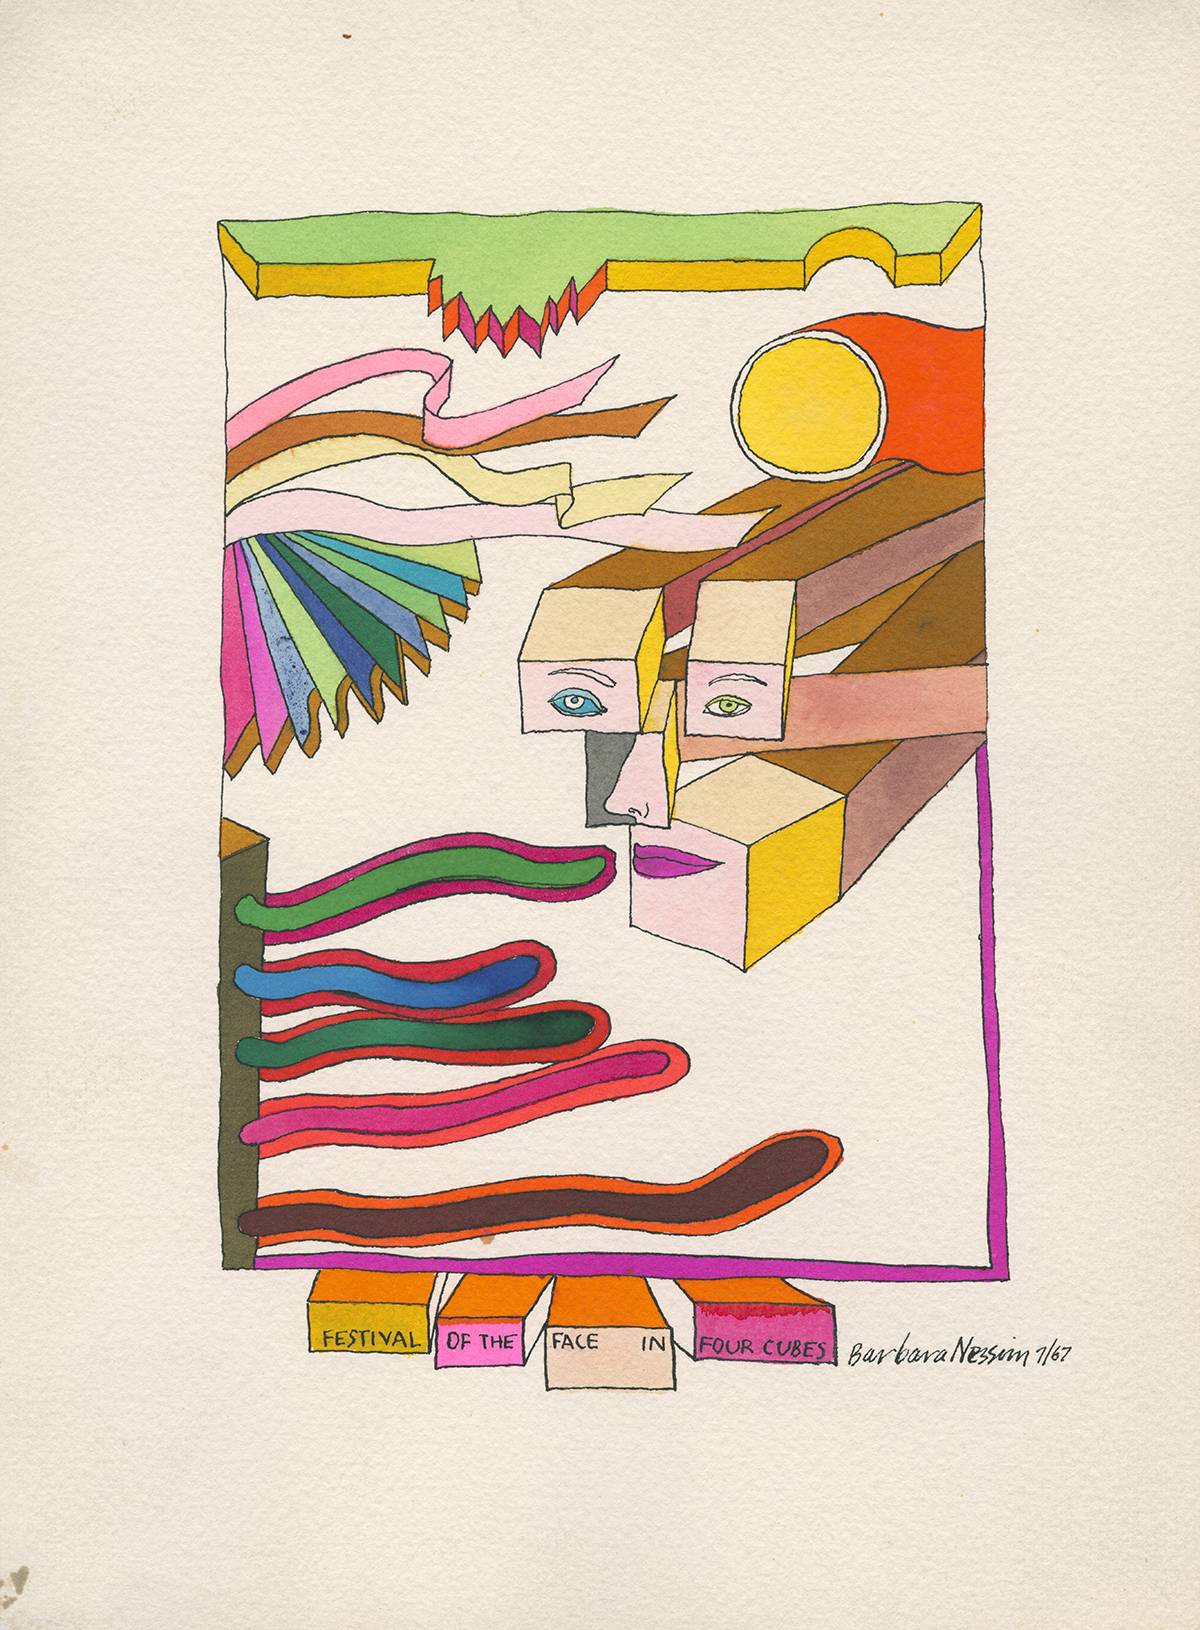 <i>Festival of the Face in Four Cubes</i>, 1967